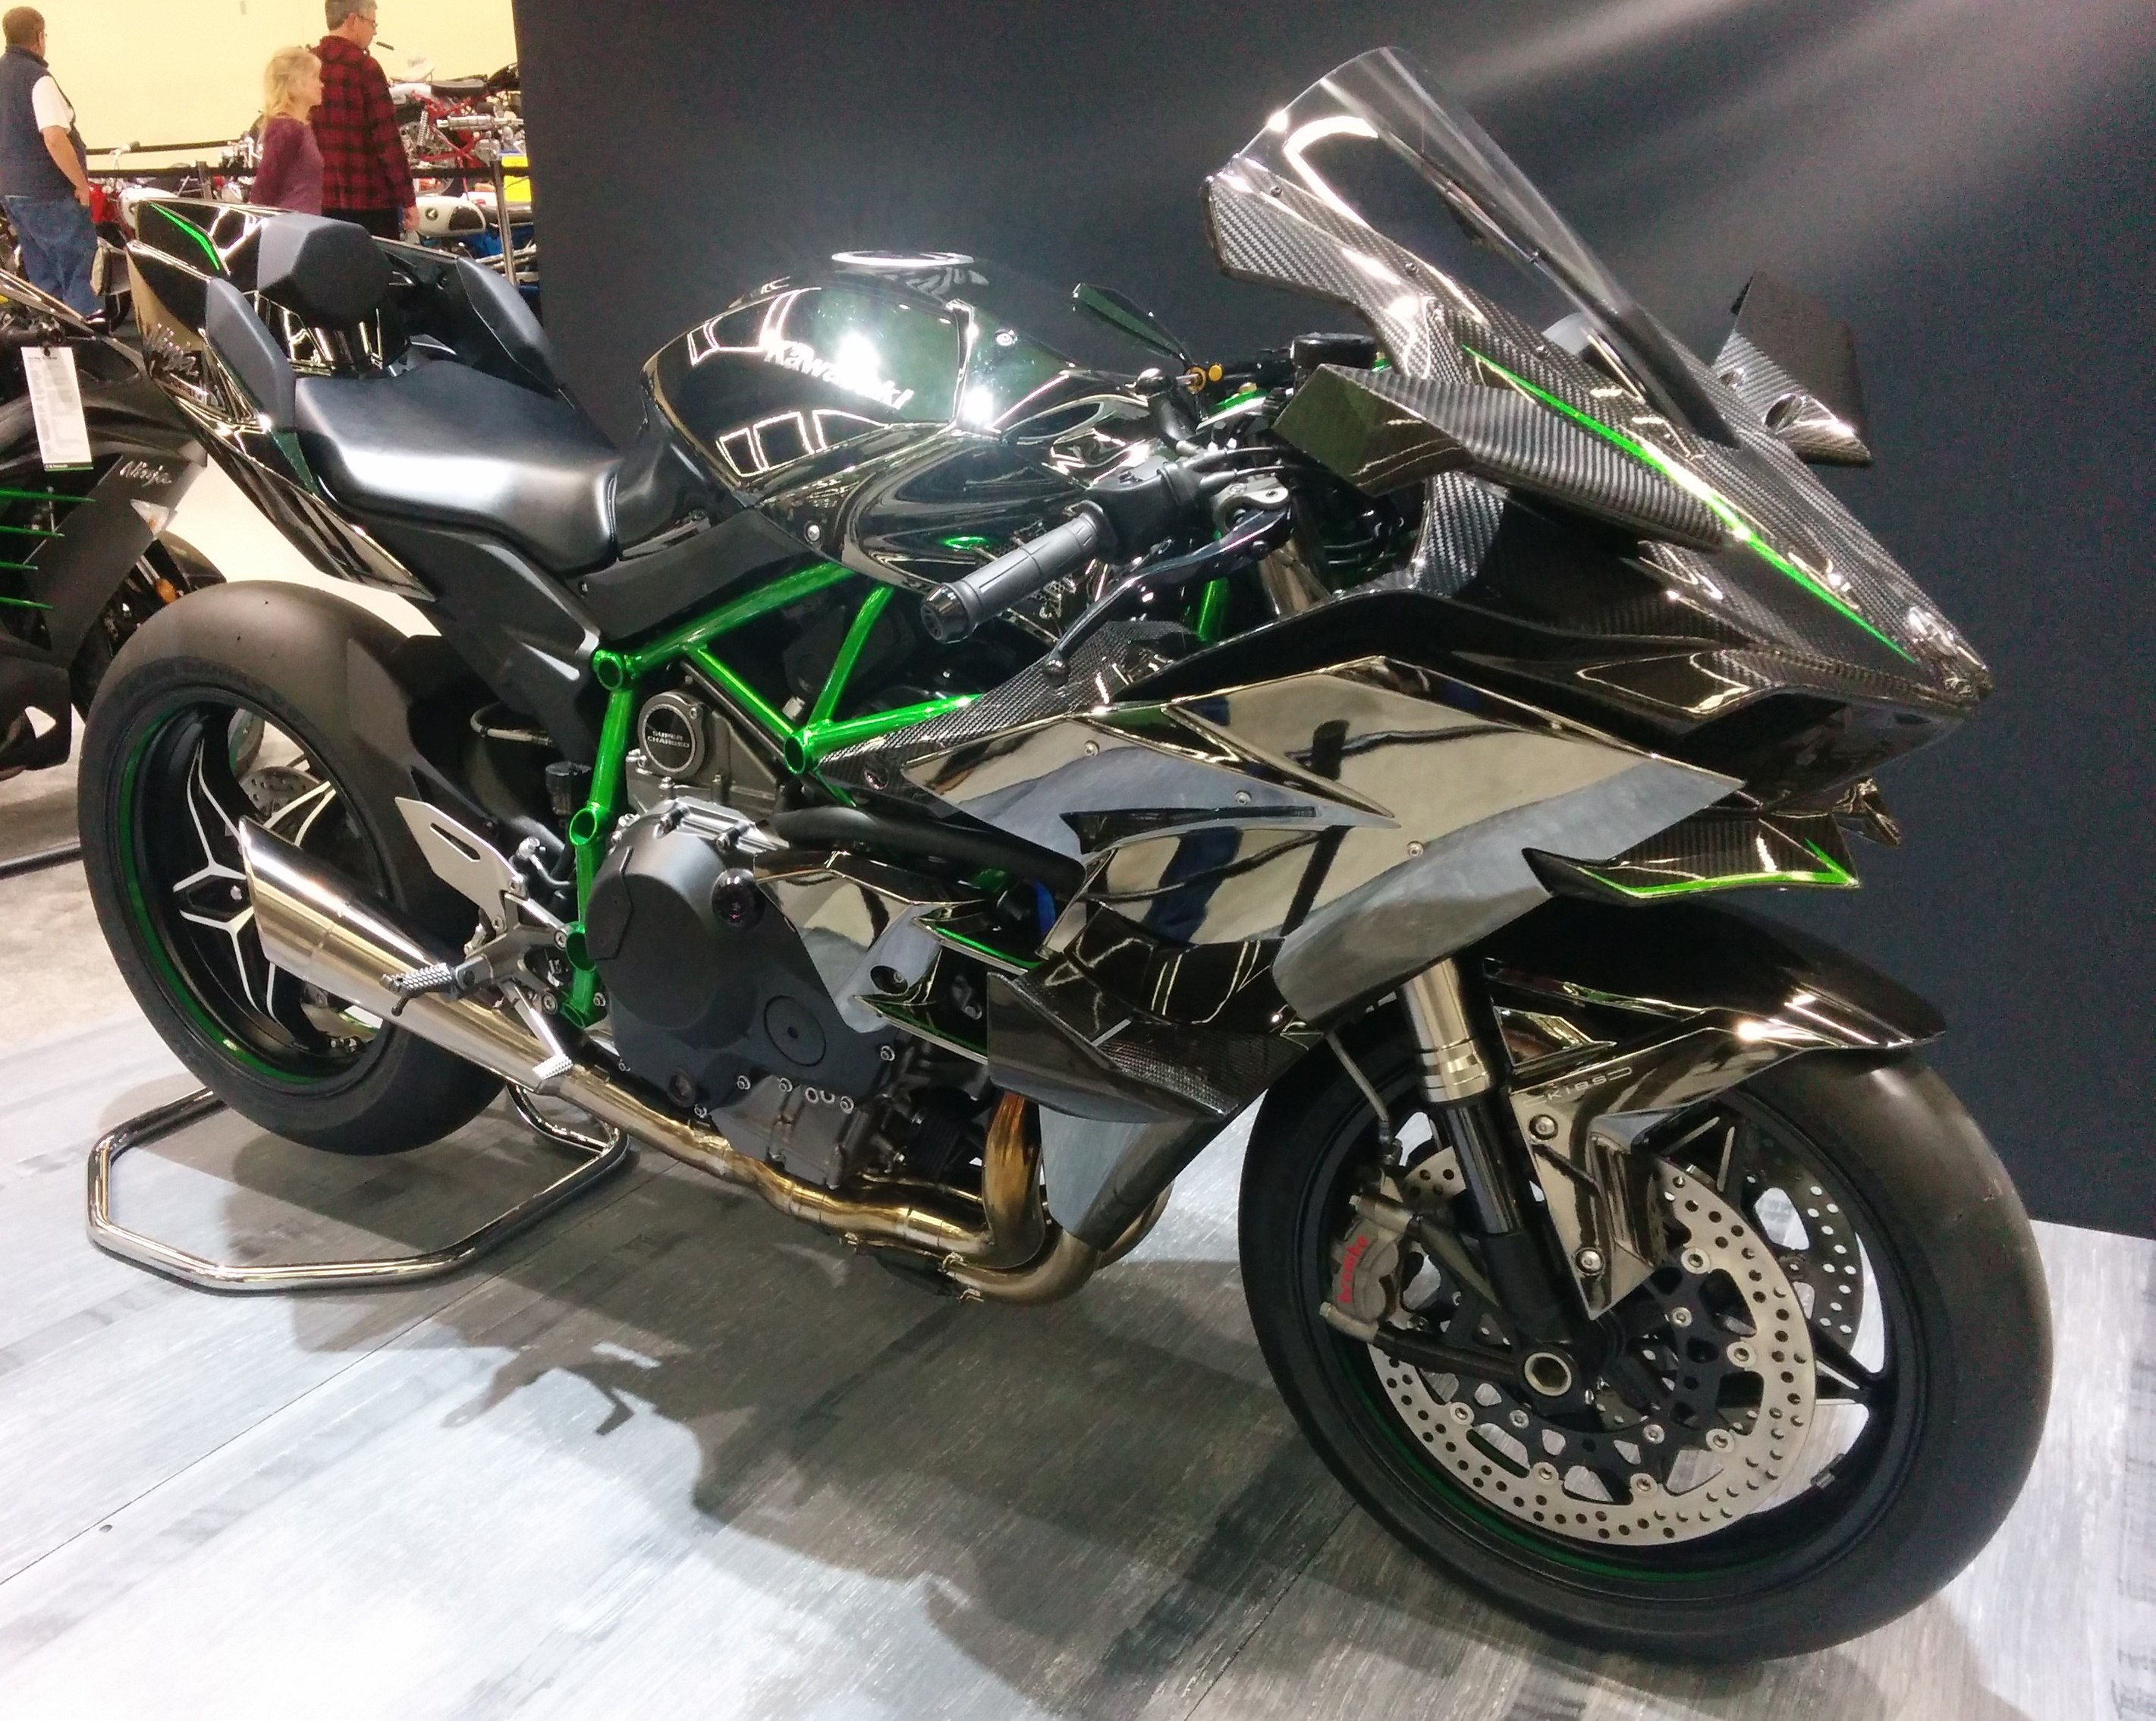 Kawasaki Ninja H2r The Complete Information And Online Sale With